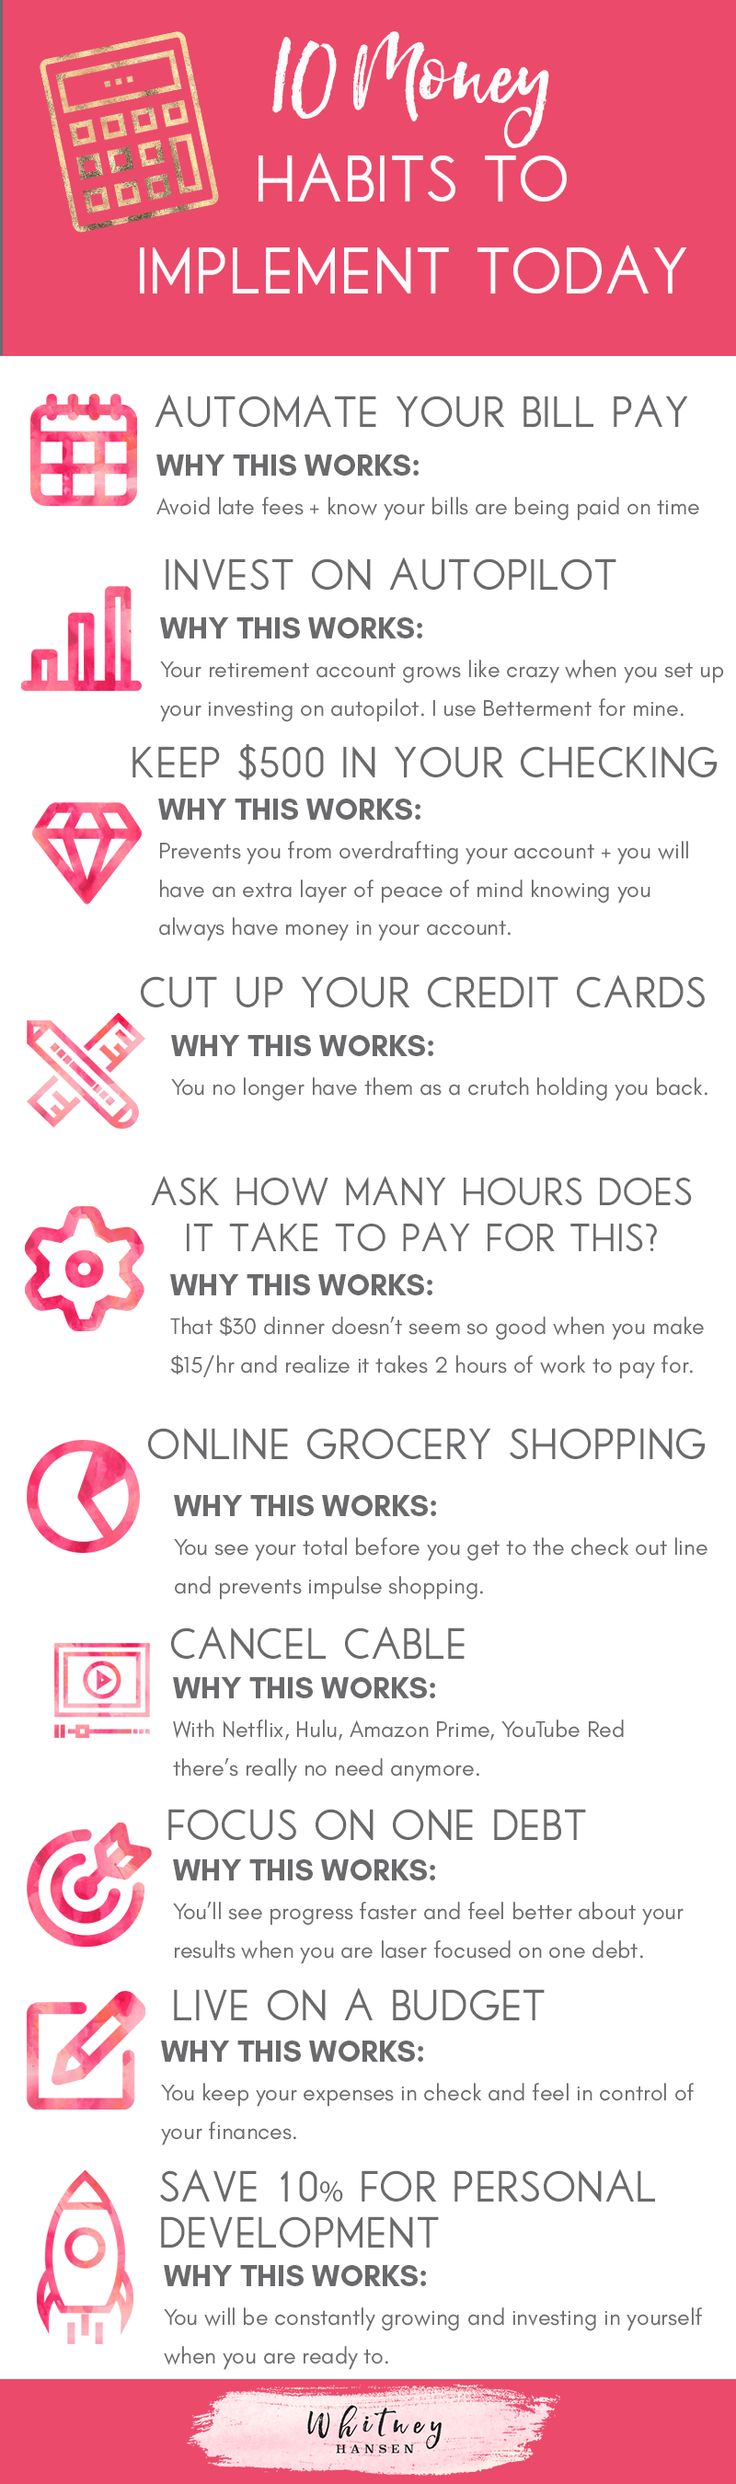 10 money habits to implement today for a better financial life! 1. Automate your bill pay 2. Invest in autopilot 3. Keep a $500 buffer in your checking account 4. Cut up your credit cards 5. Reframe your mindset 6. Online grocery shopping 7. Cancel cable 8. Focus on one debt at a time 9. Budget 10. Save 10% of your income for personal development   finance tips   money saving tips   Find out more at whitneyhansen.com